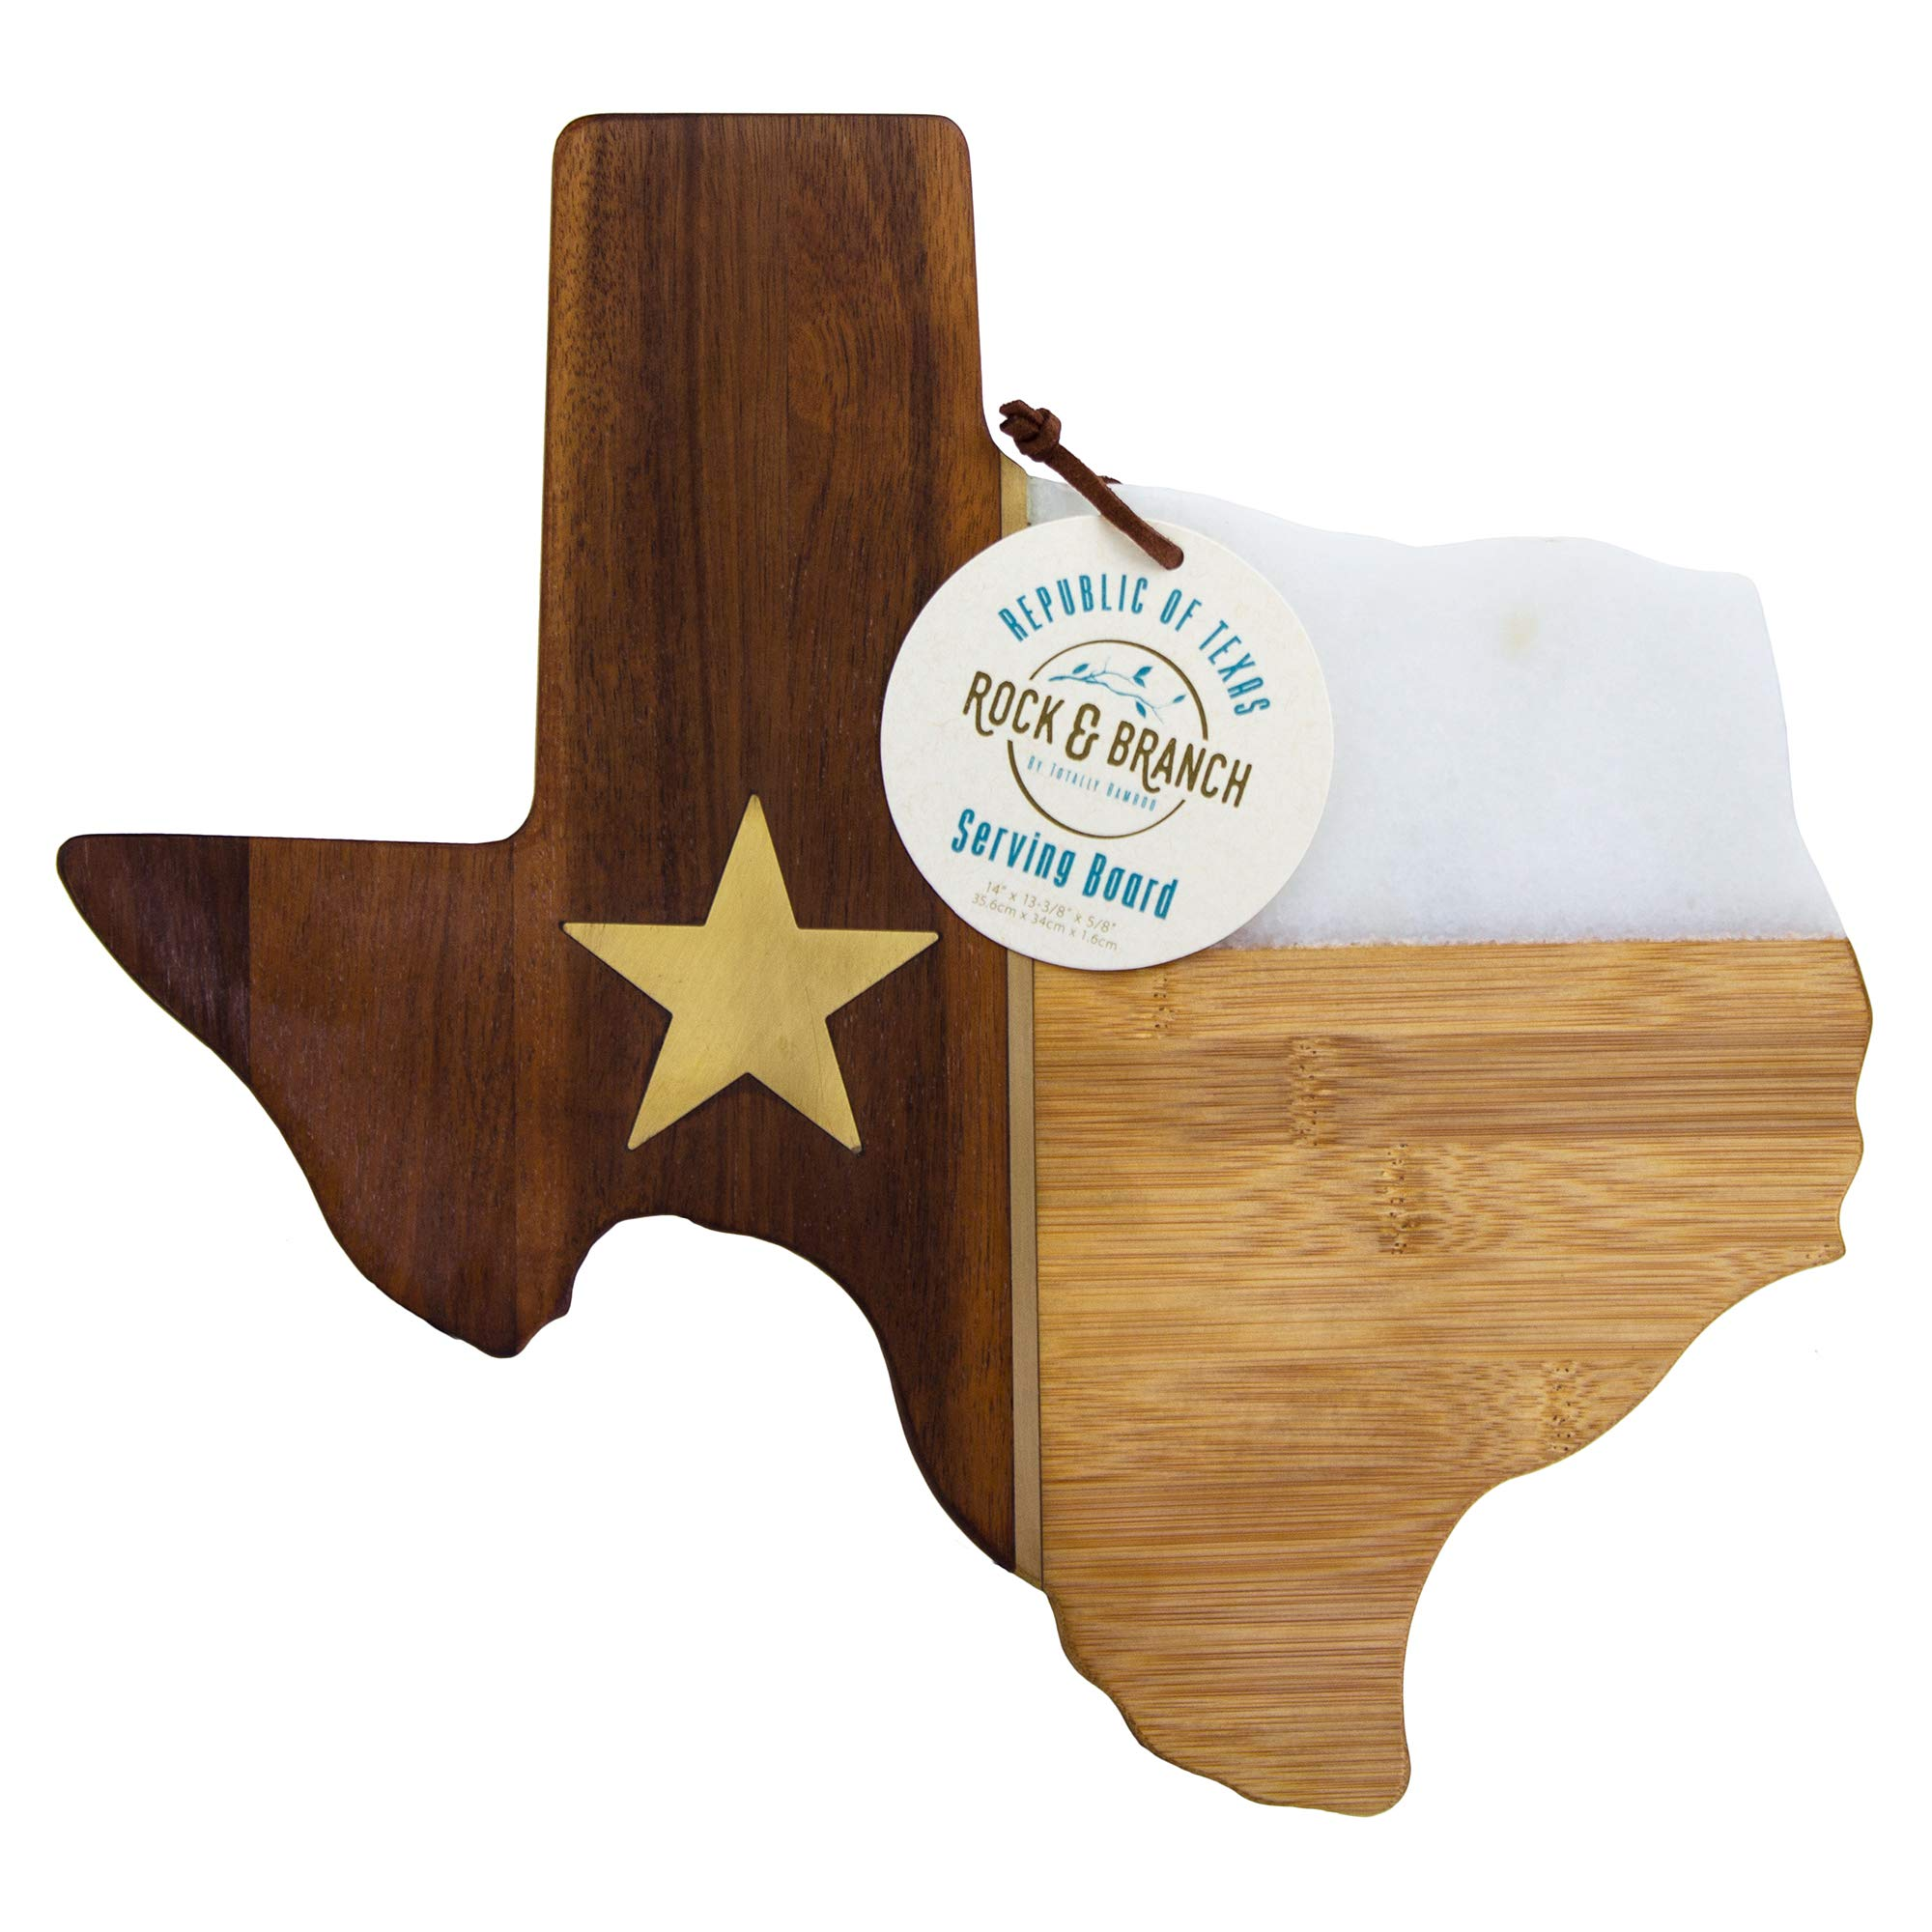 Totally Bamboo Rock & Branch Series Republic of Texas State Shaped Serving Board by Totally Bamboo (Image #2)